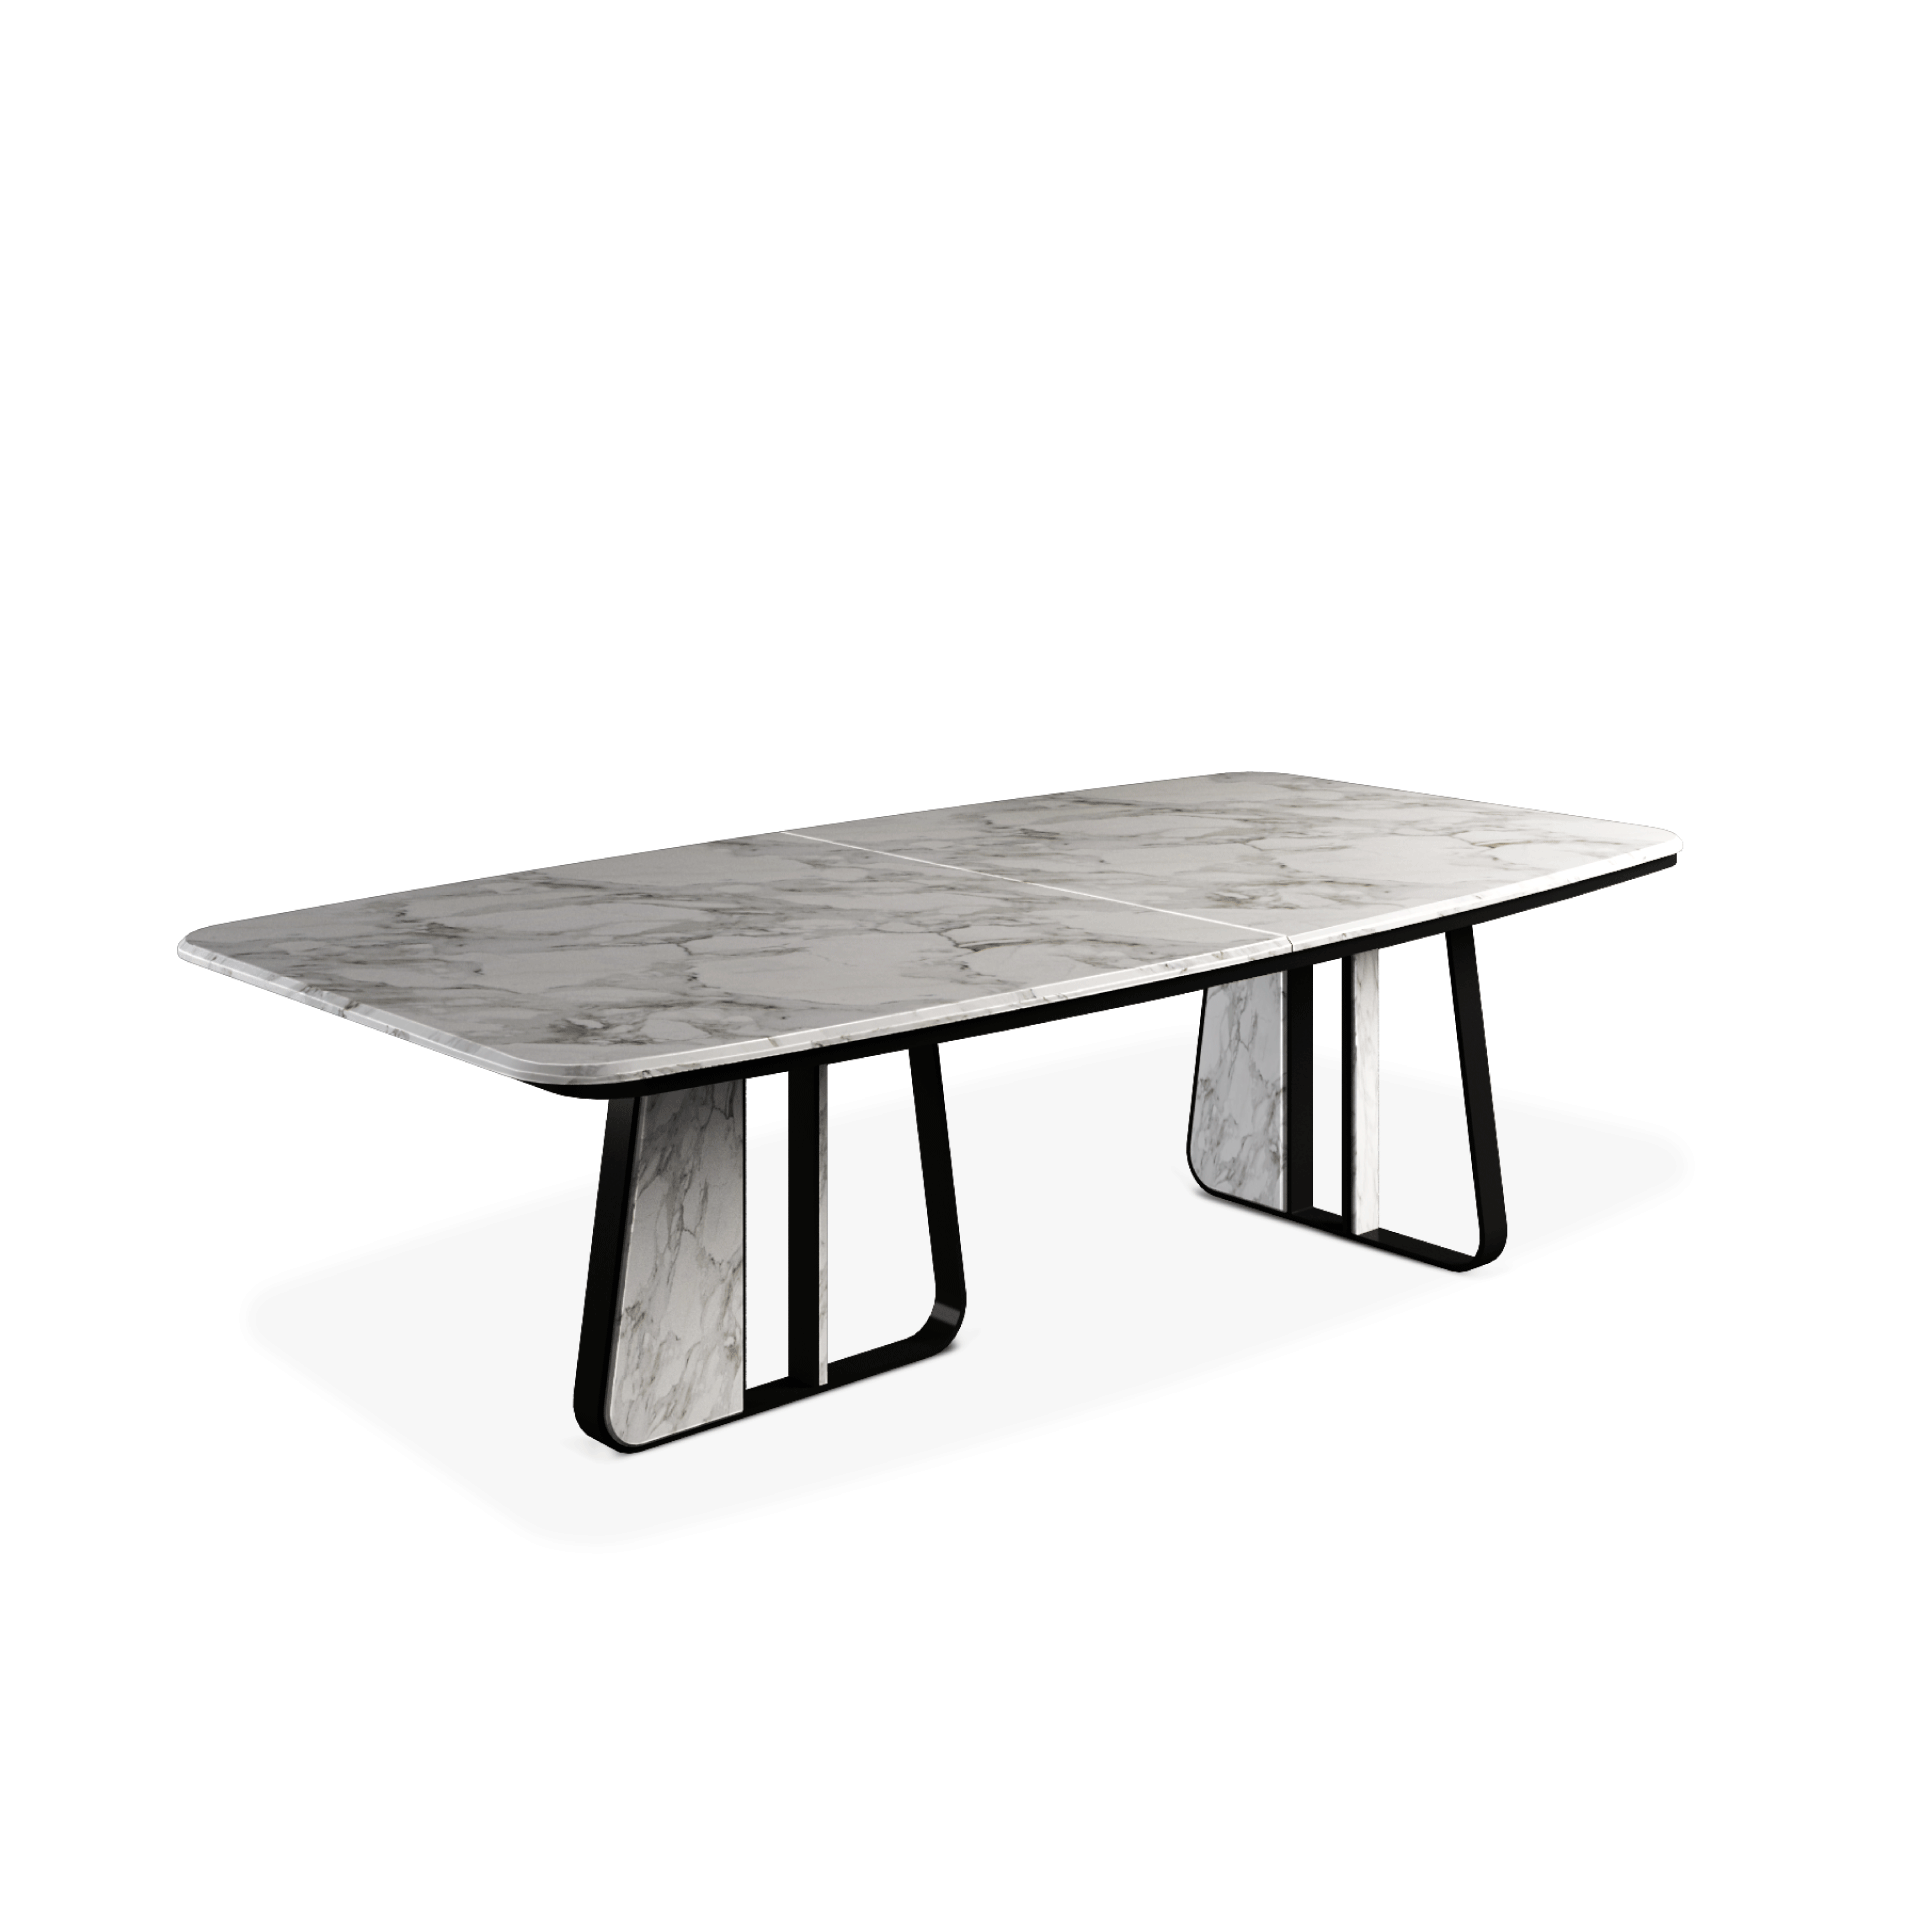 Kenai Dining Table designed by Porus Studio